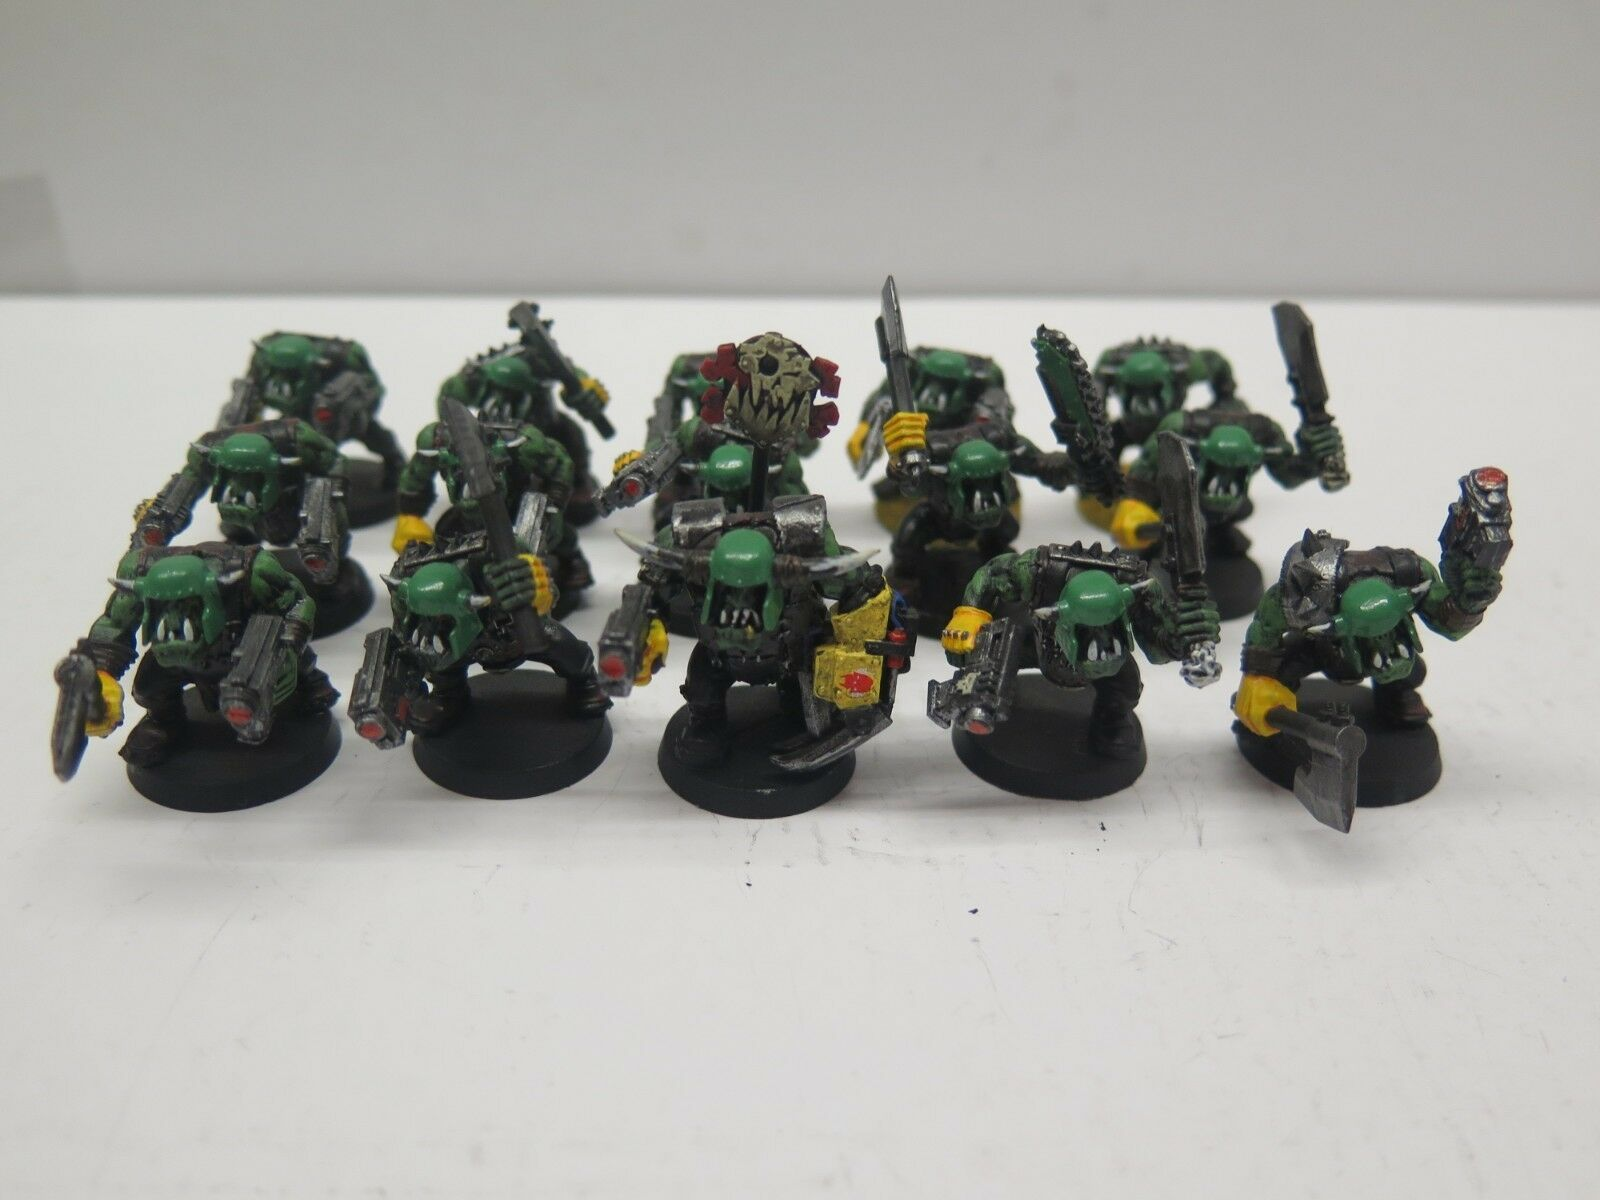 GW WARHAMMER 40K Plastic Nobz Green Squad (15) Pro Painted